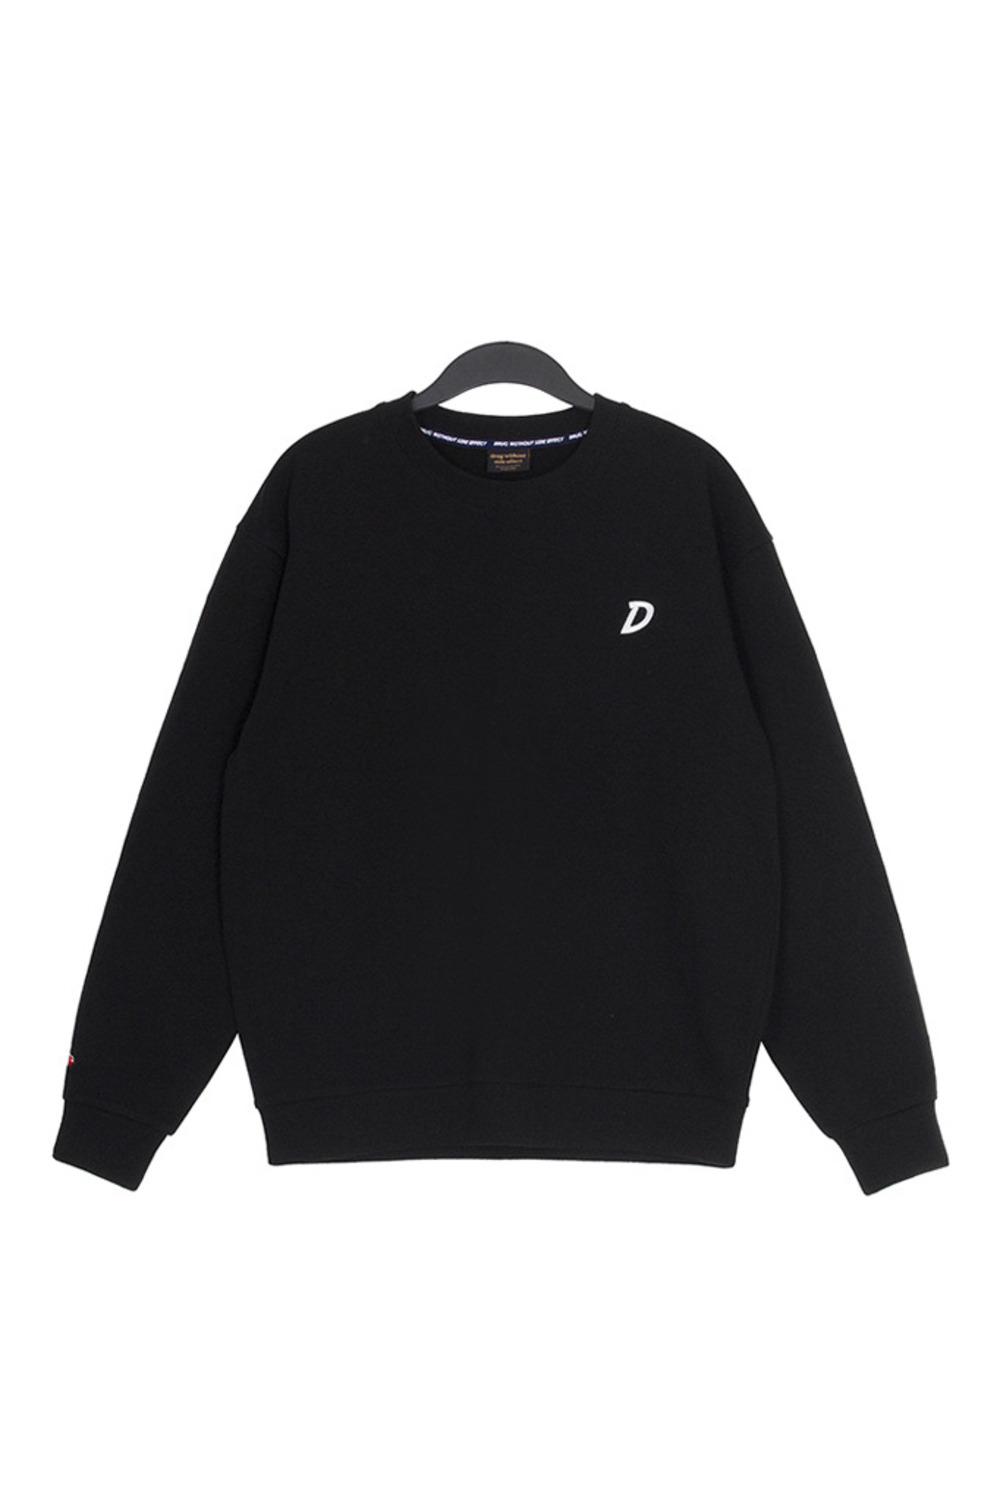 D SWEAT SHIRTS (BLACK)